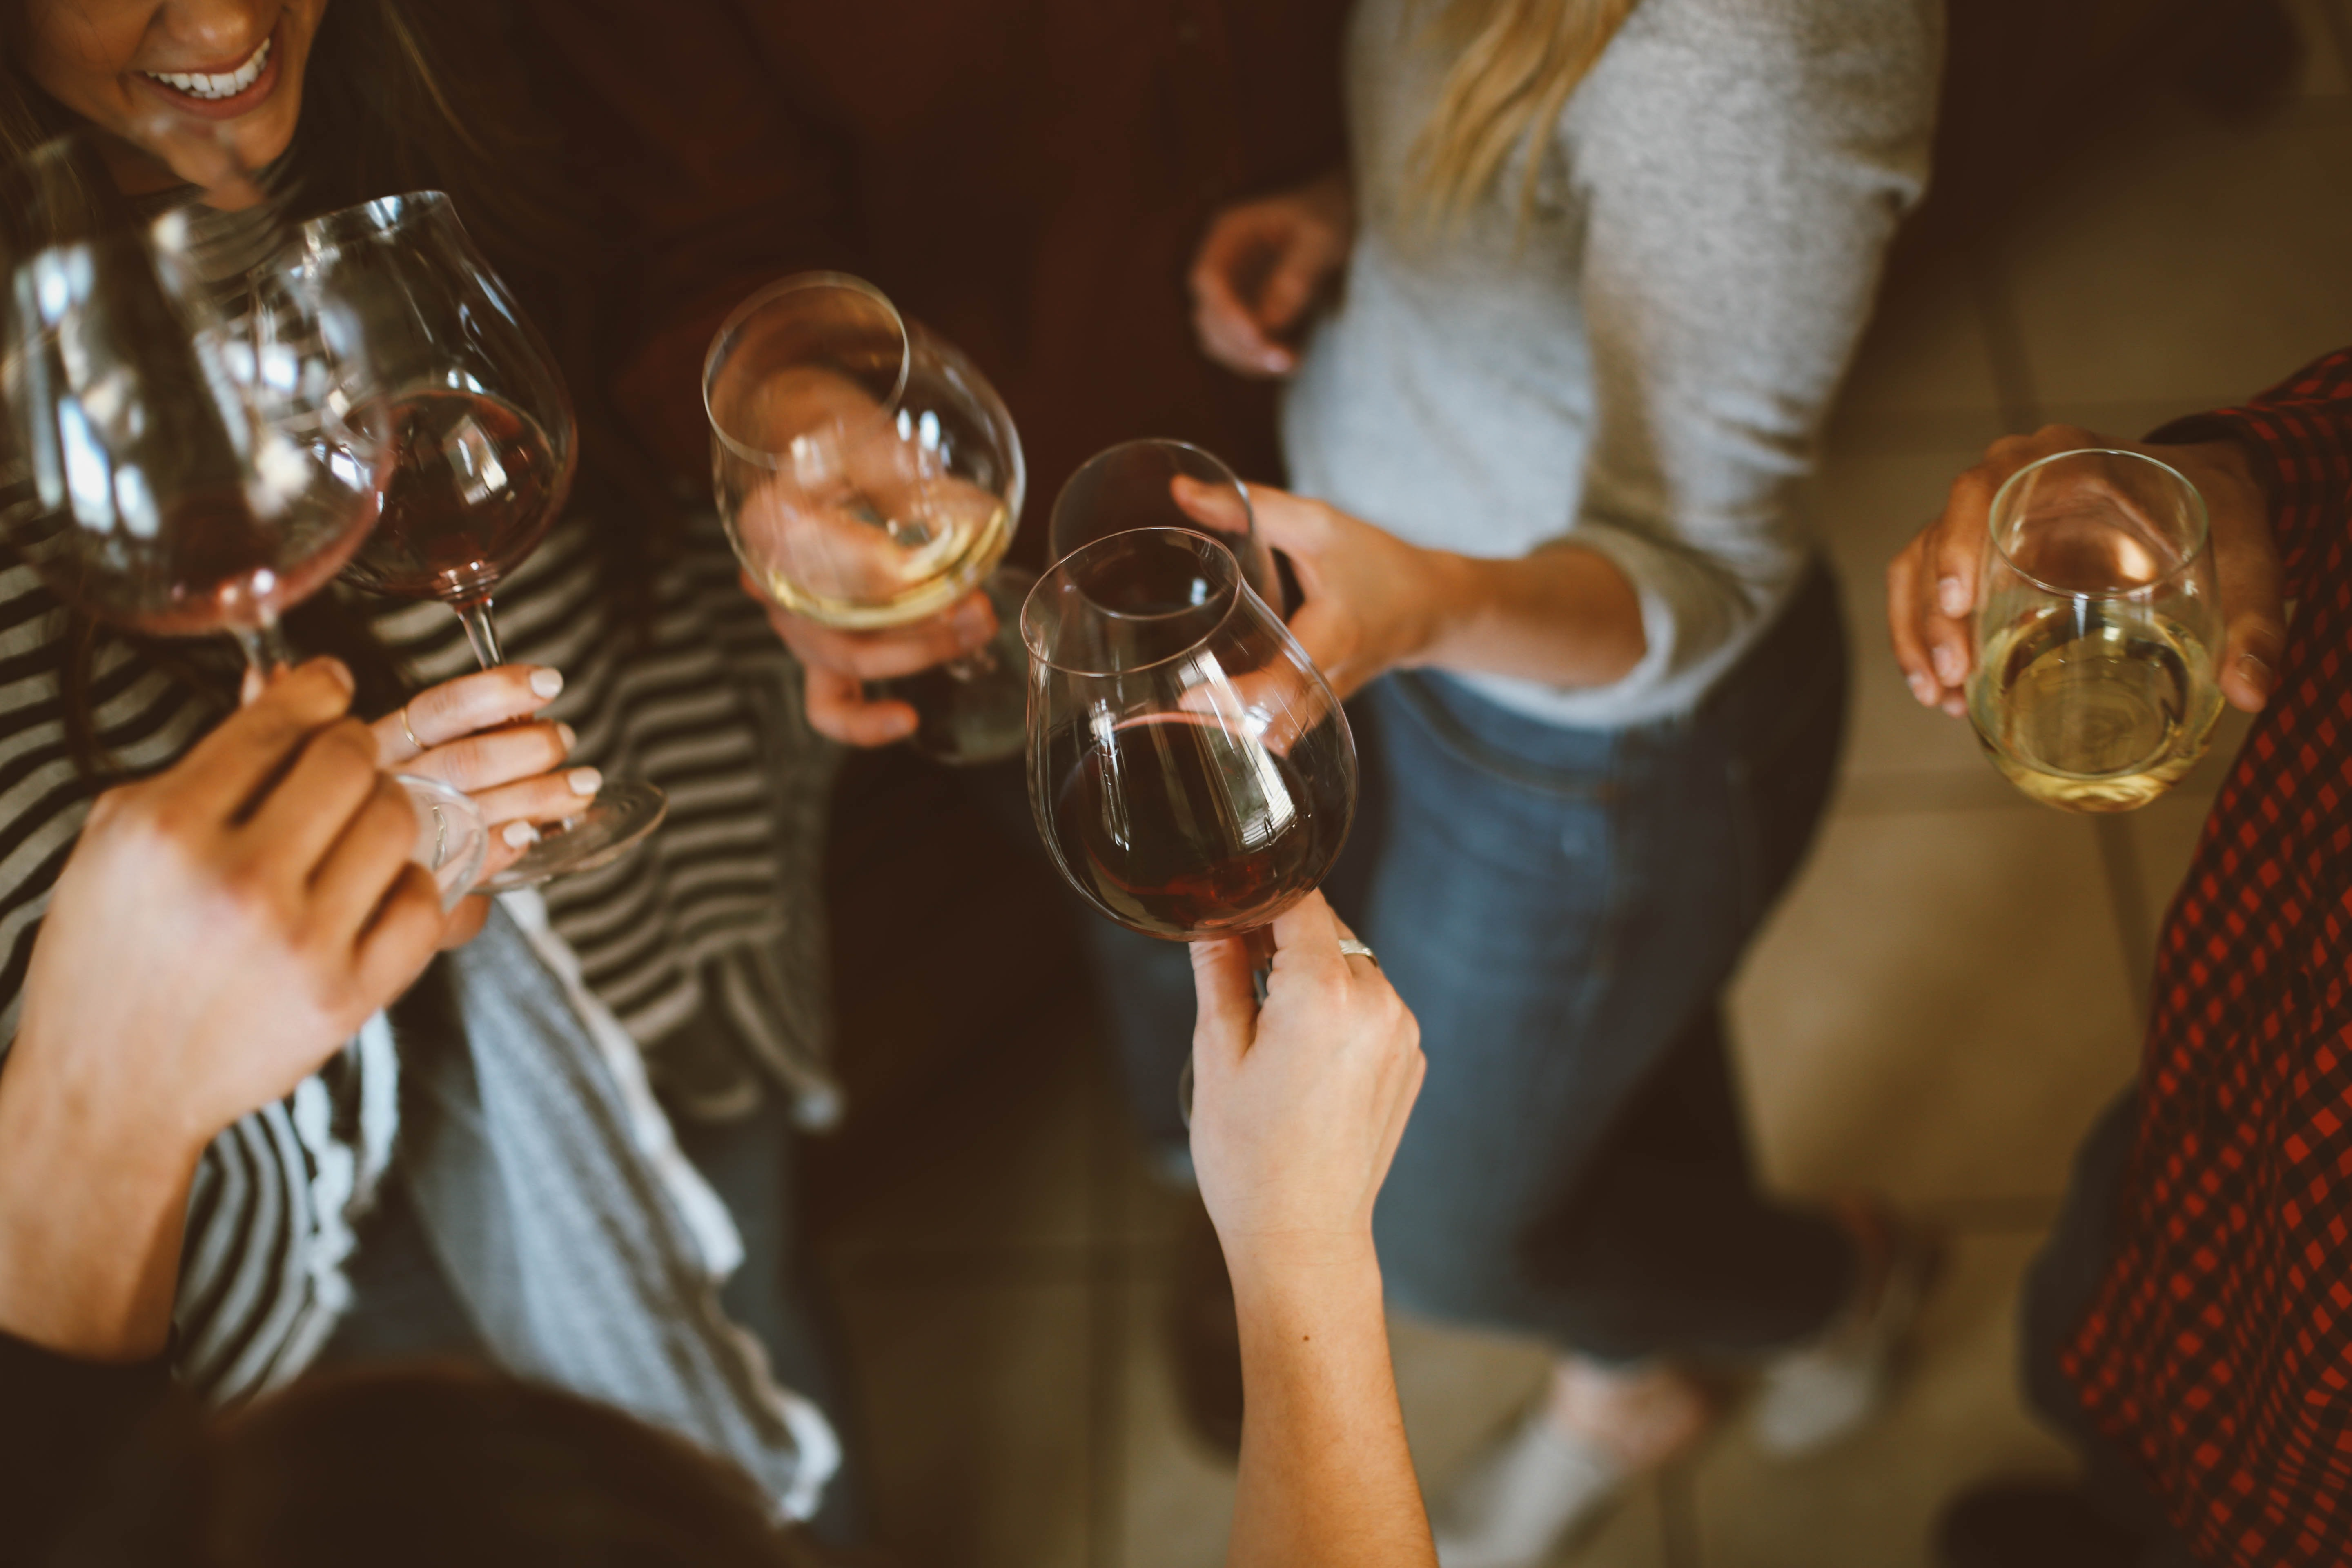 World Health Organization suggests women aged 18 to 50 should stop drinking alcohol - Med Lifestyle.